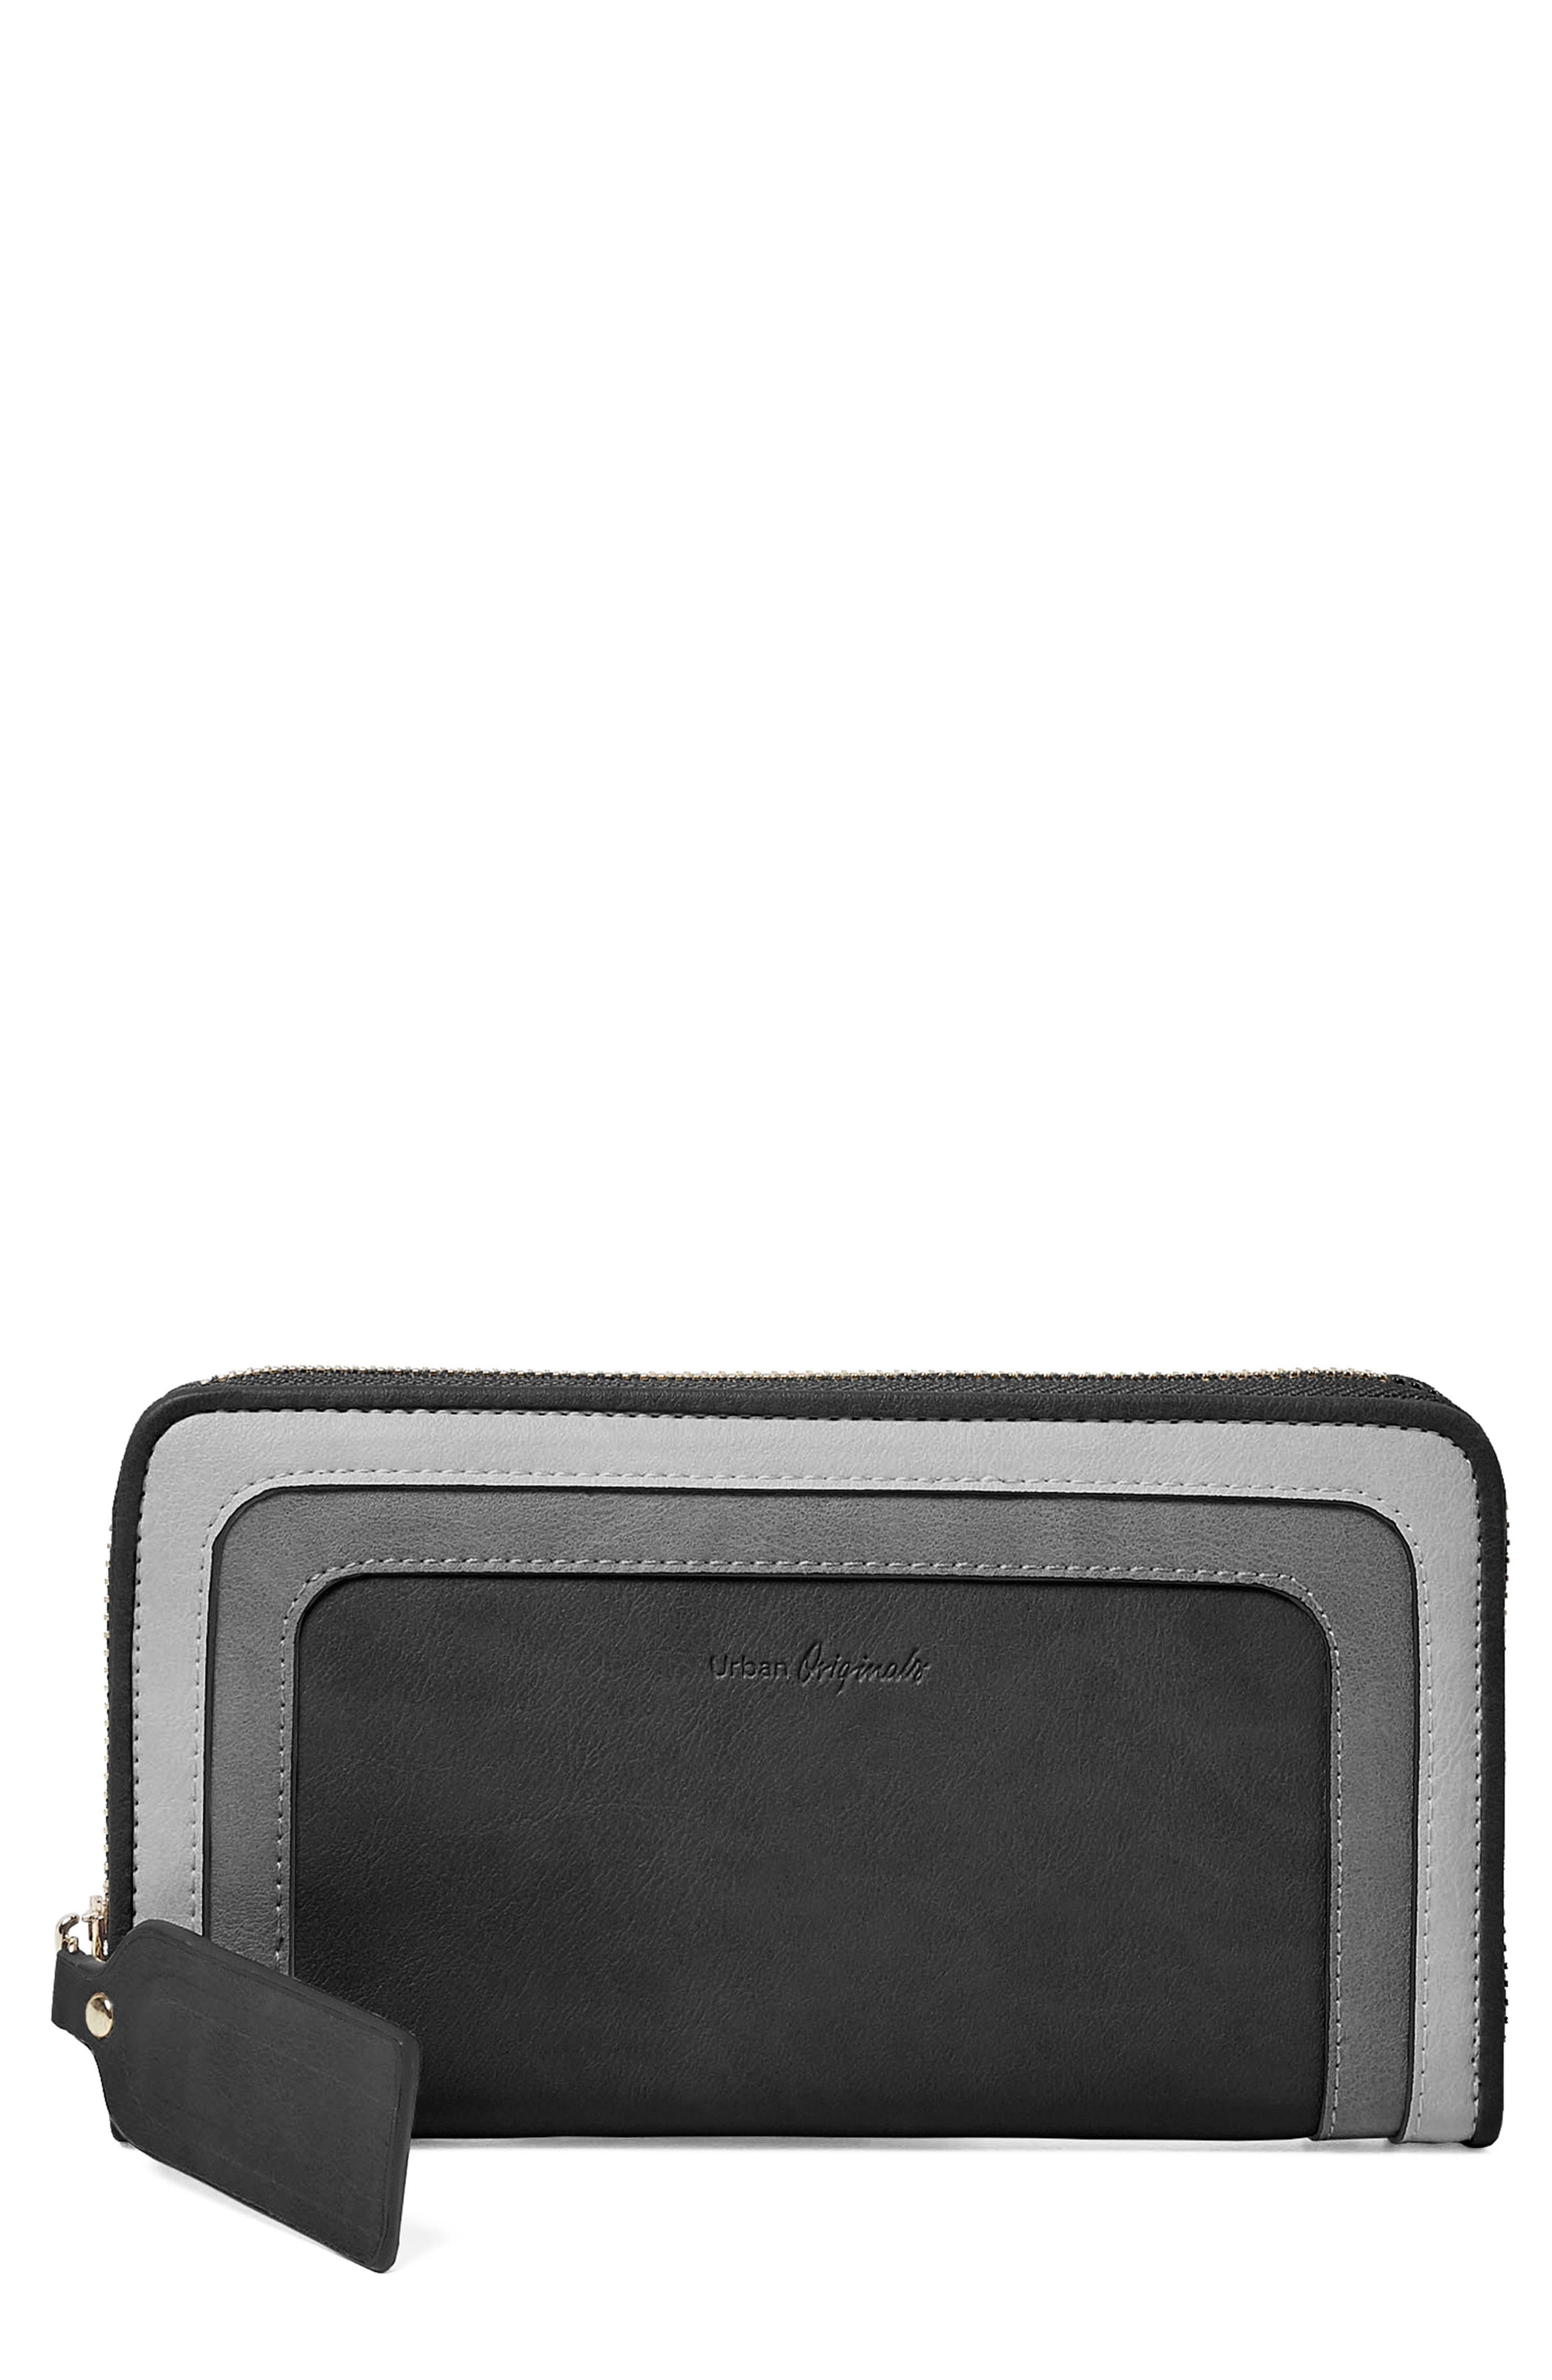 Drama Queen Faux Leather Zip Wallet,                         Main,                         color, 001